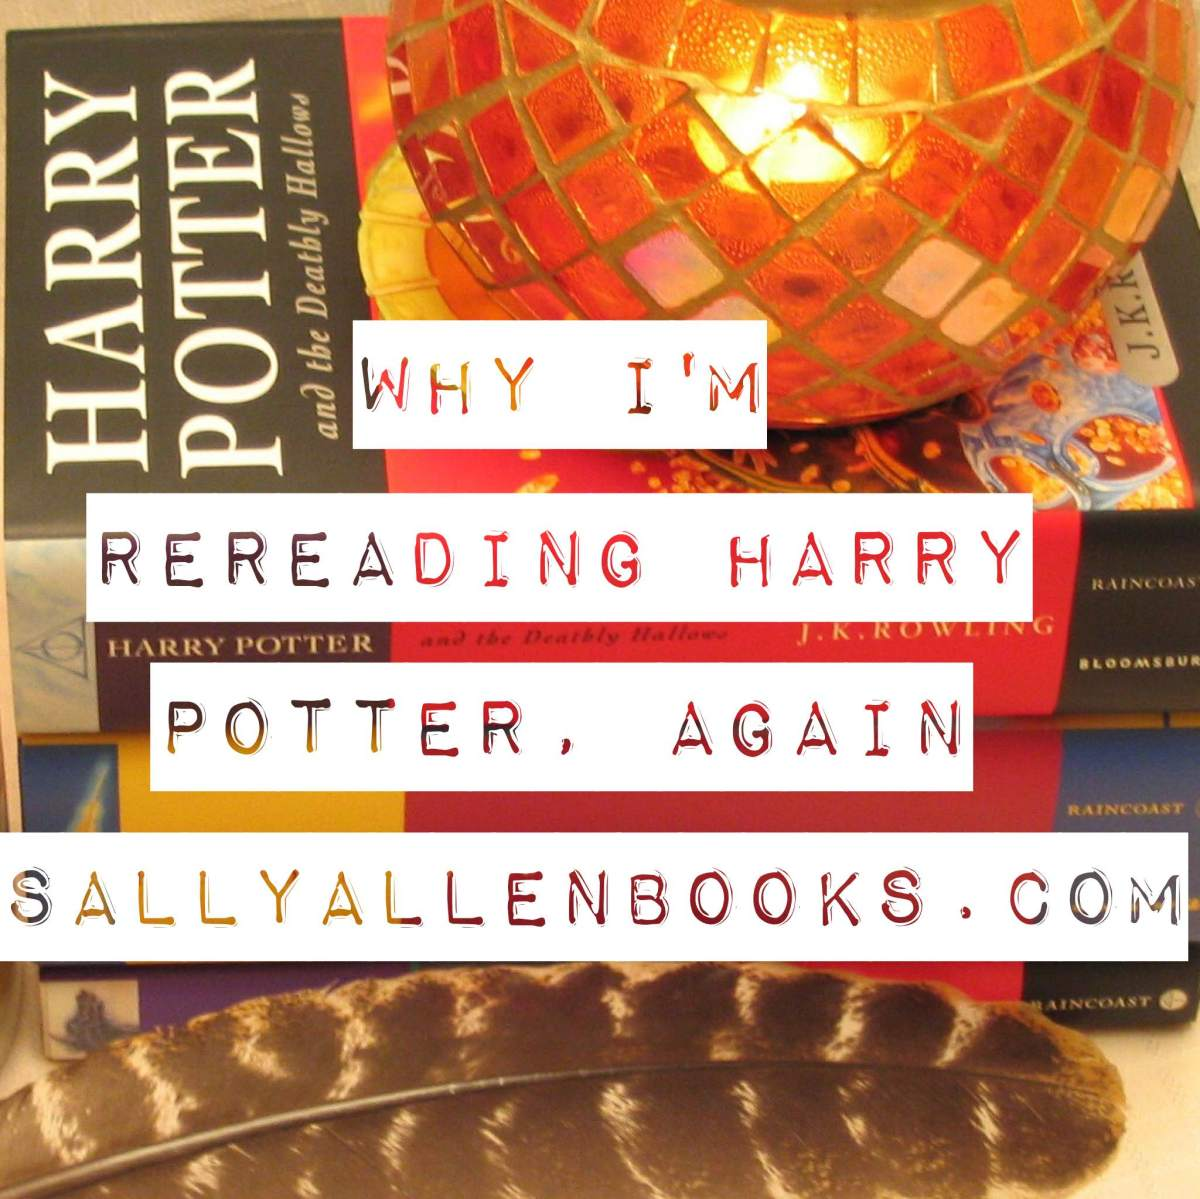 Why I'm rereading Harry Potter, again